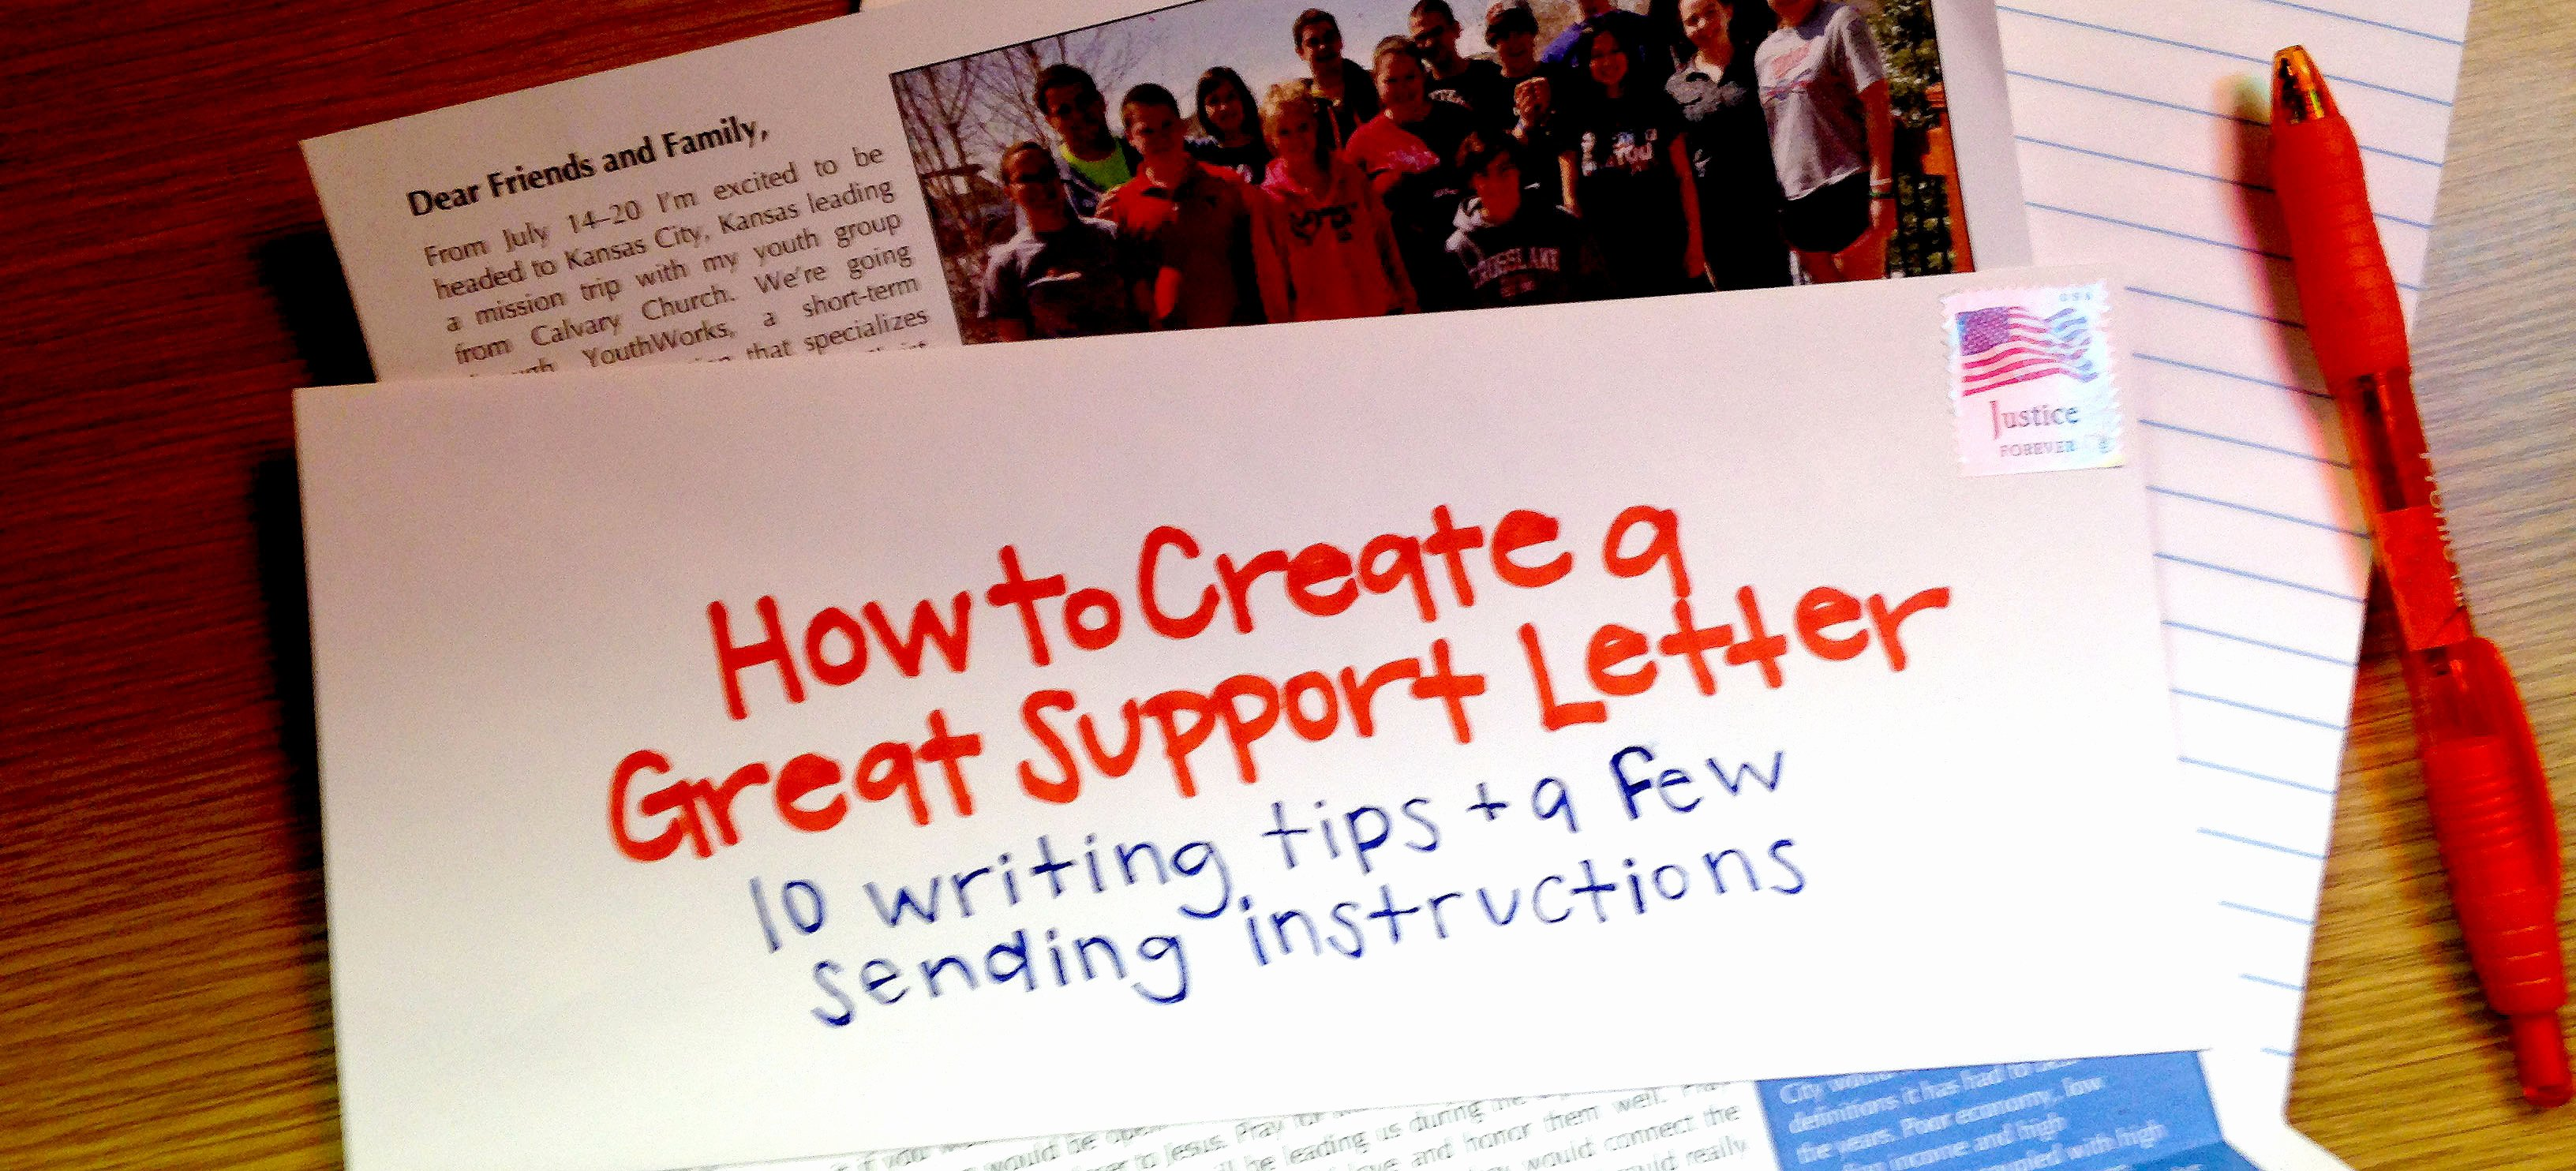 Support Letter Template for Missions Beautiful How to Create A Great Support Letter Youthworks